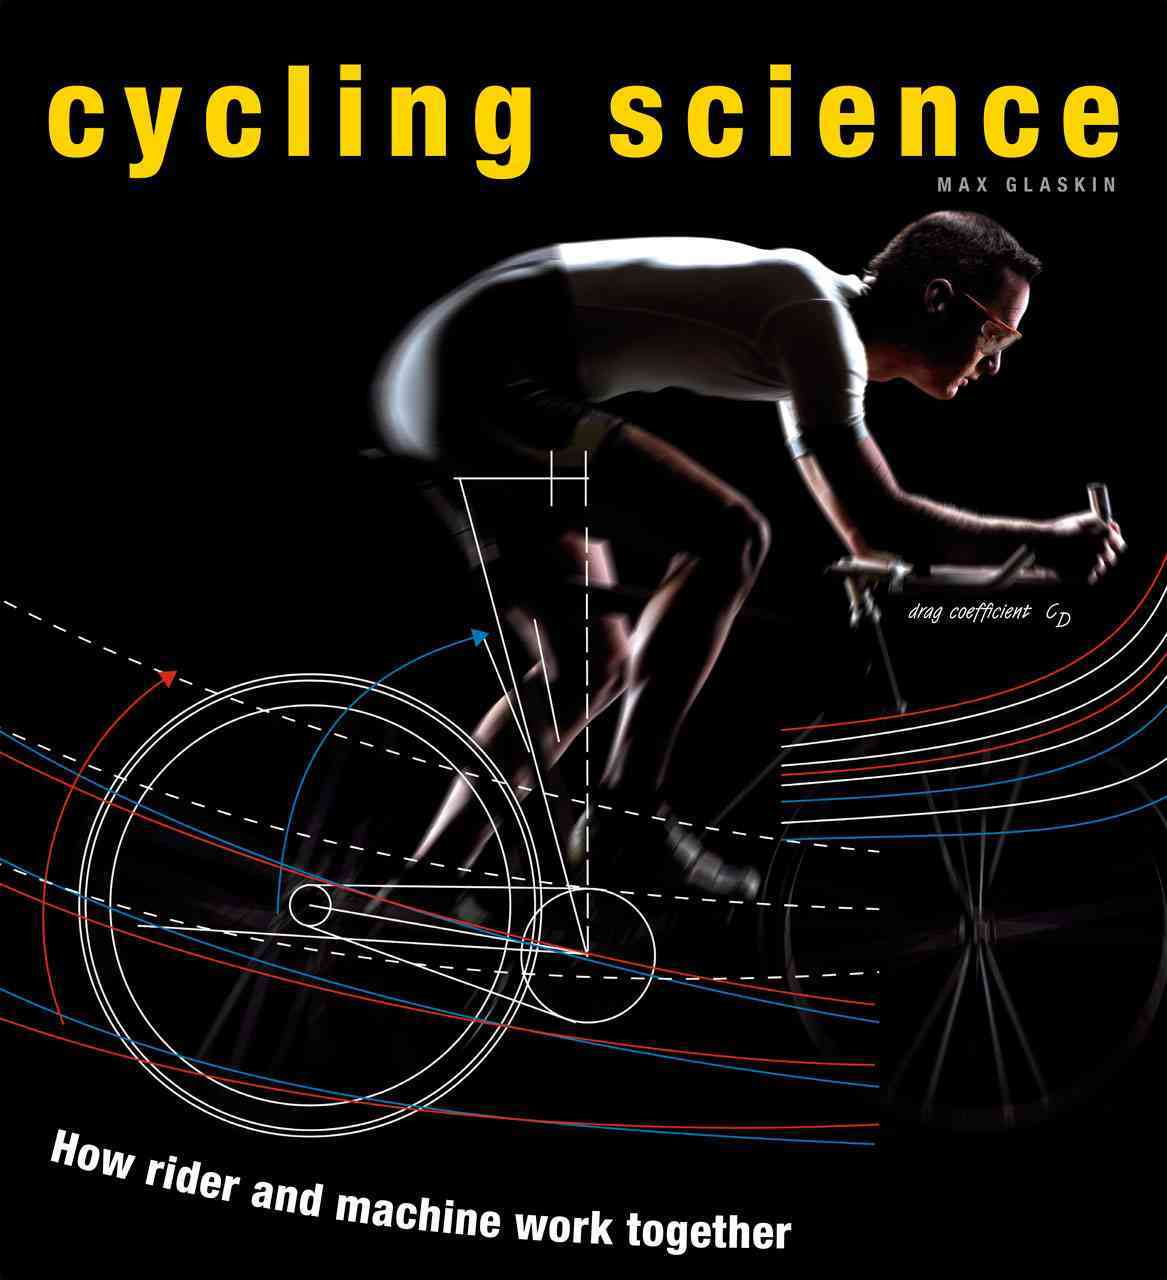 Curtis Corlew in Bicycle Land: Three cycling books